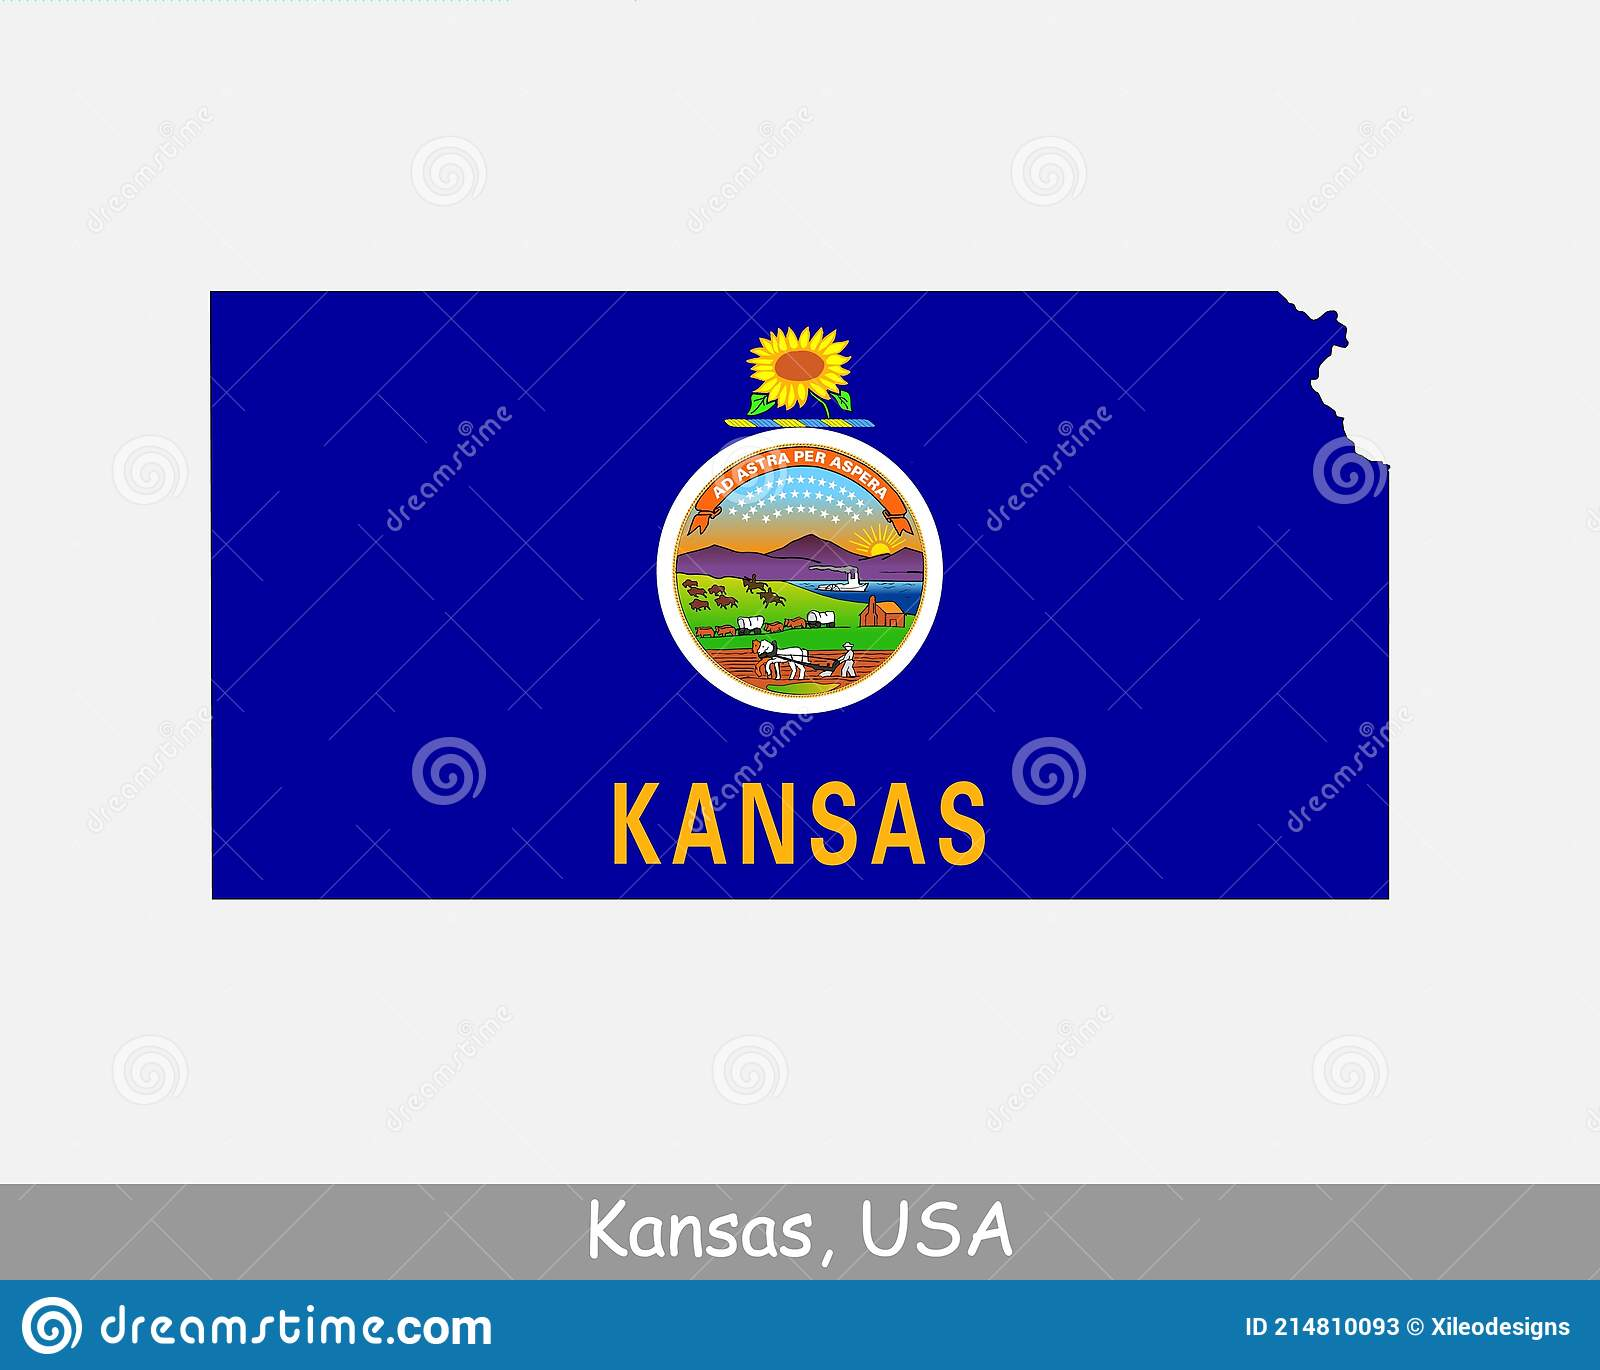 82,278 sq mi (213,100 sq km). Kansas Map Flag Map Of Ks Usa With The State Flag Isolated On White Background United States America American United States Stock Vector Illustration Of Flag Cartography 214810093